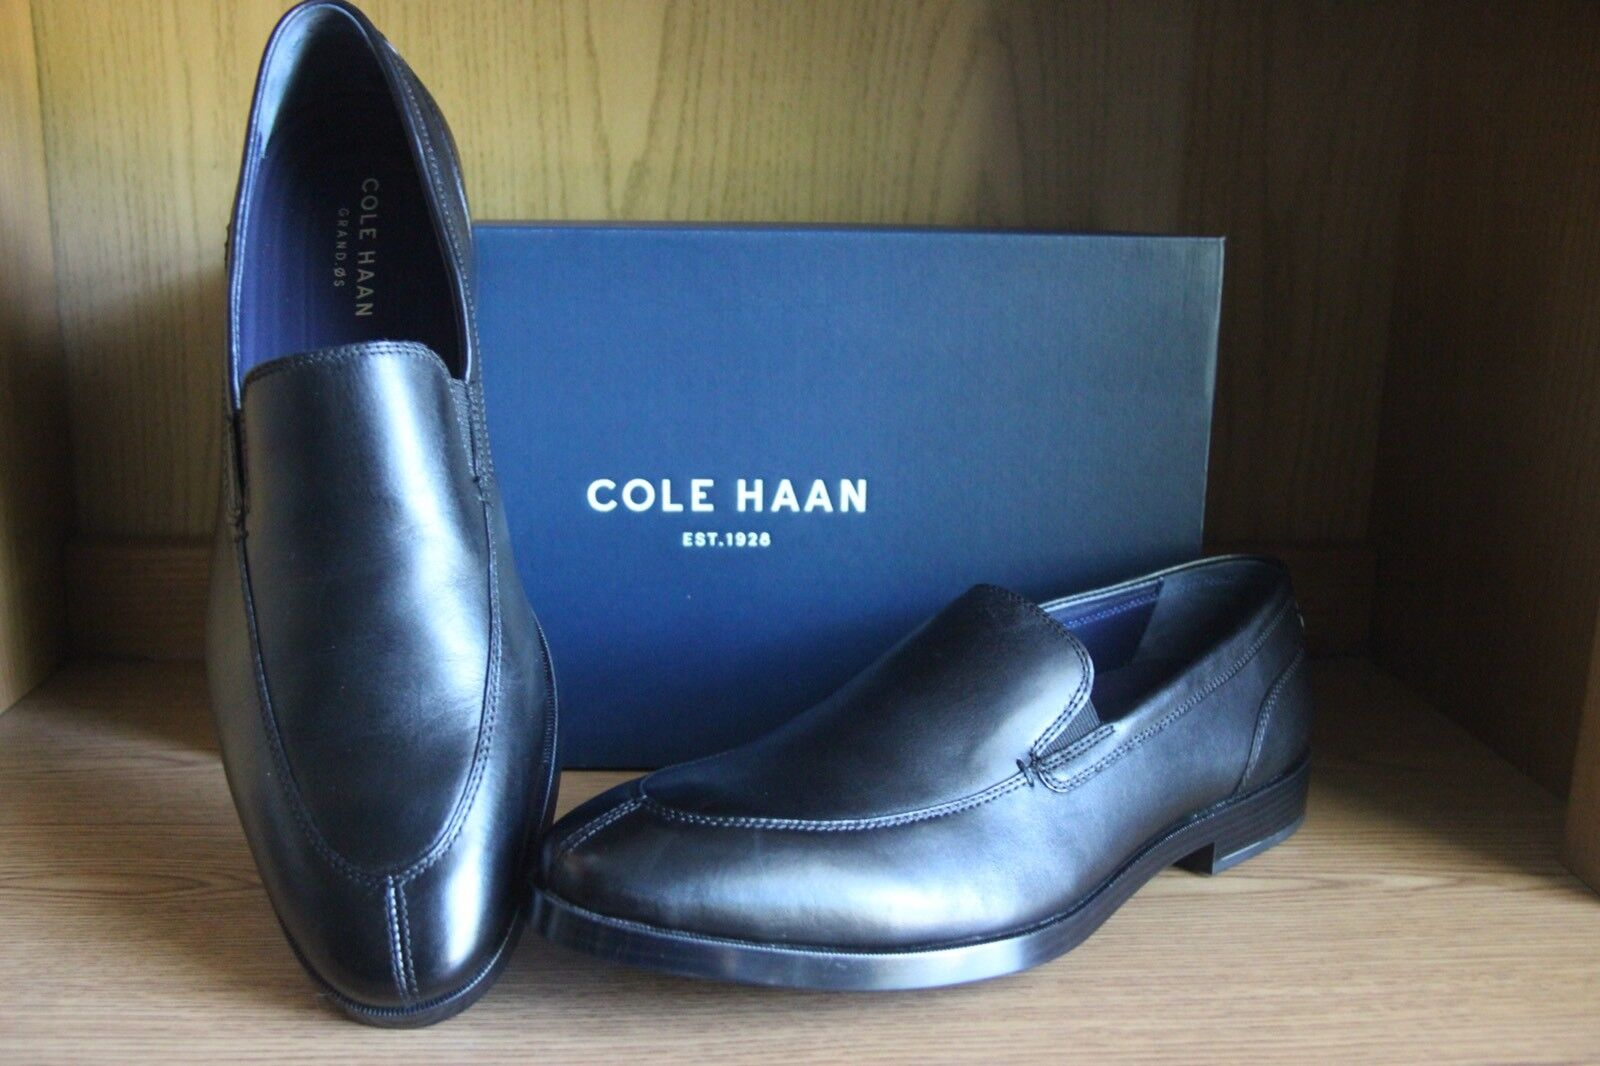 5e0a88715ae Cole Haan Jay Grand 2 Gore Loafer Shoe Men Black Size 11.5 C25077 ...